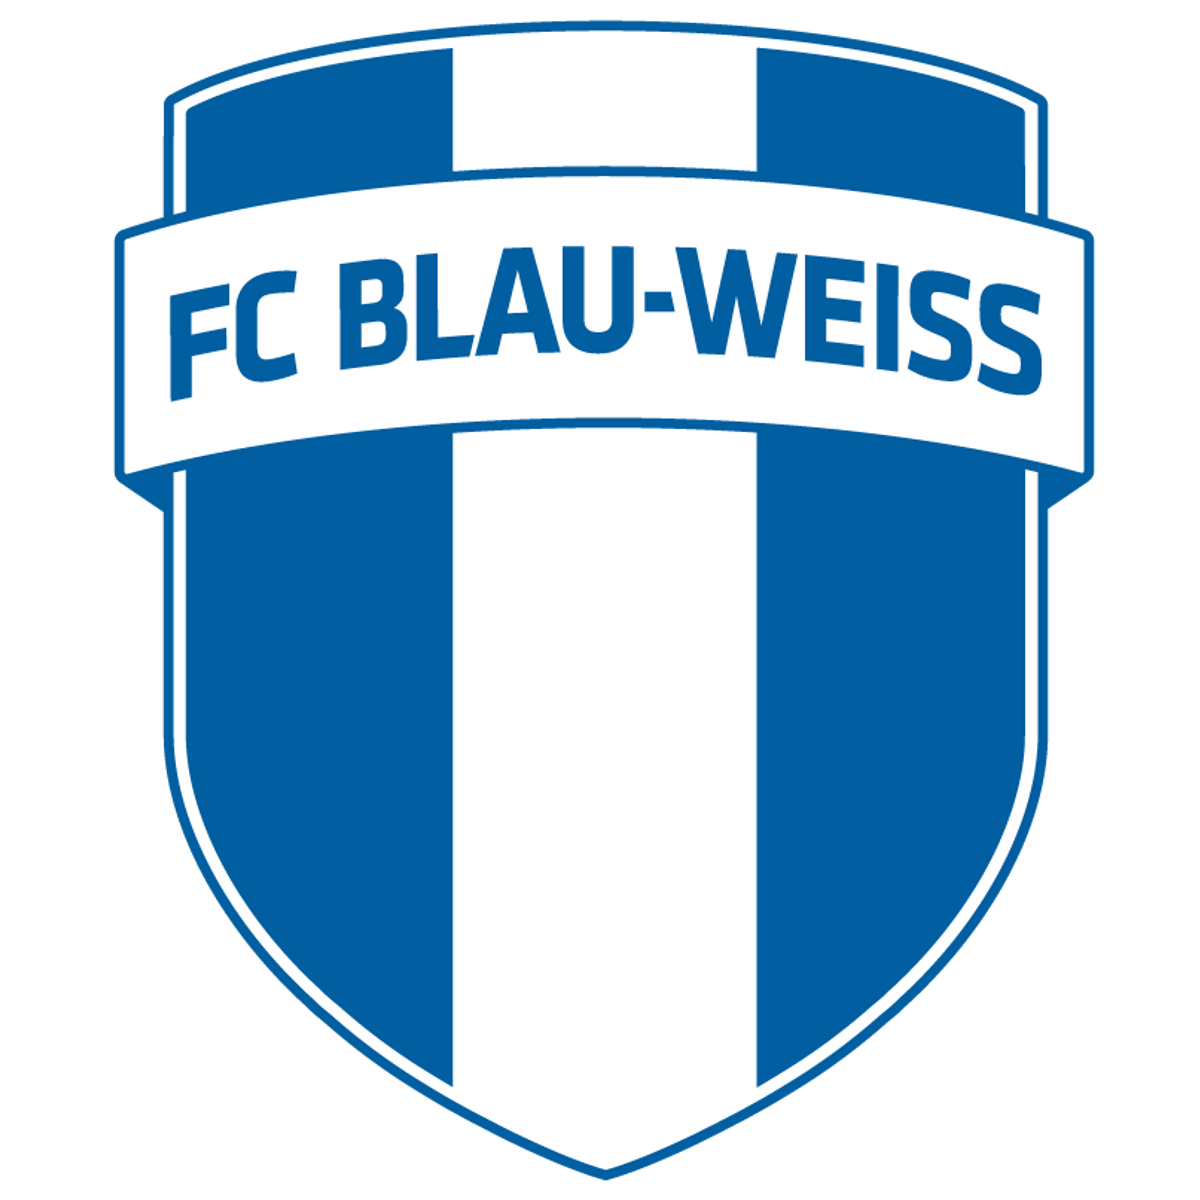 fc blau wei leipzig wikipedia. Black Bedroom Furniture Sets. Home Design Ideas